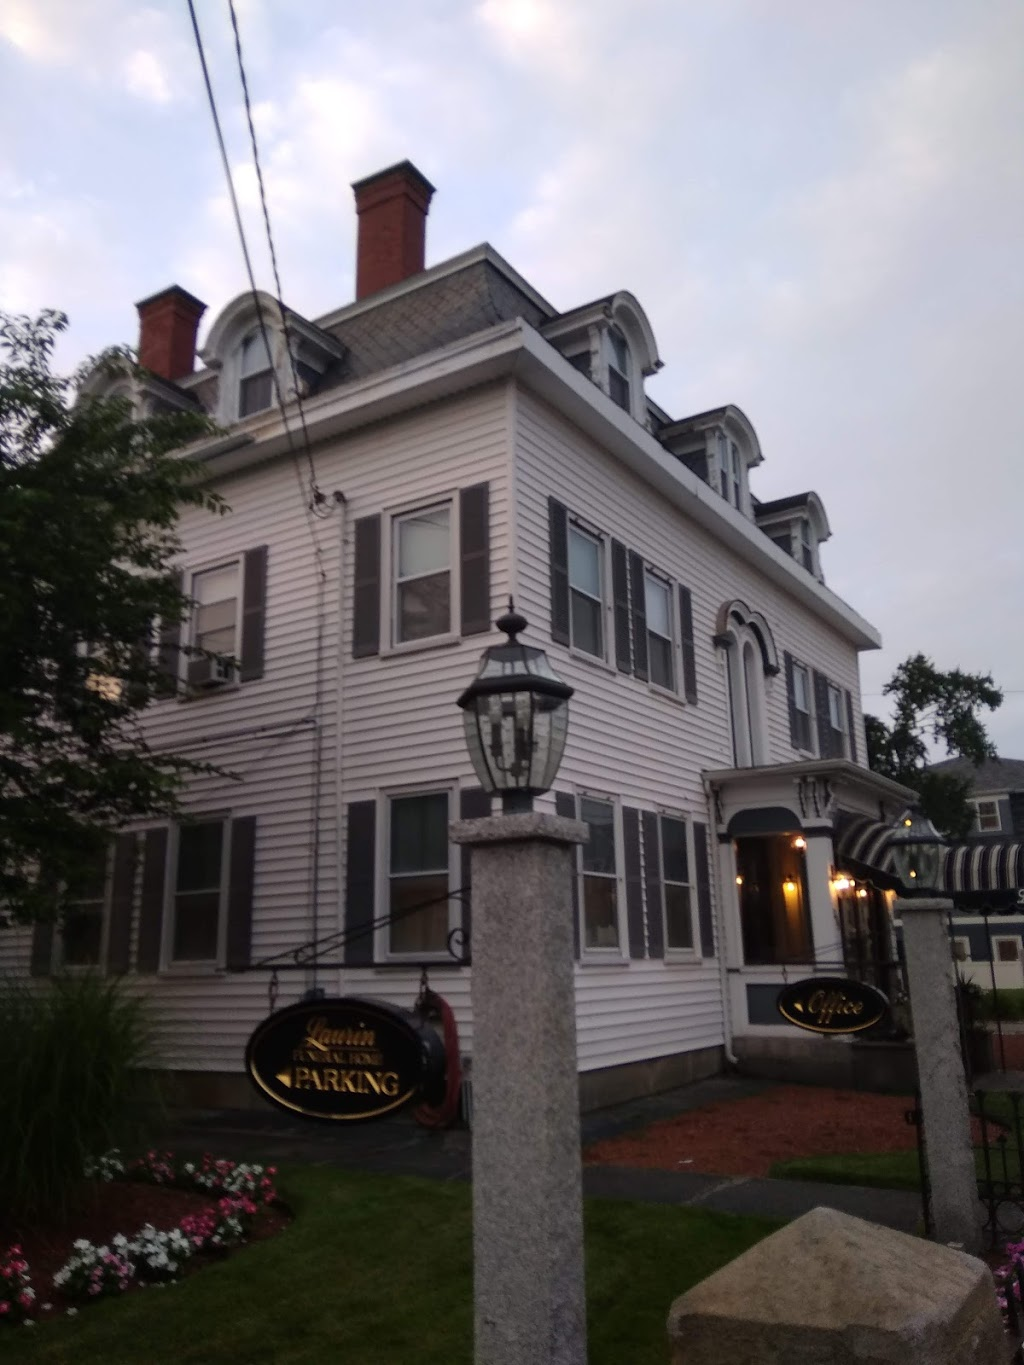 M. R. Laurin & Son Funeral Home - funeral home    Photo 6 of 6   Address: 295 Pawtucket St, Lowell, MA 01854, USA   Phone: (978) 452-0121